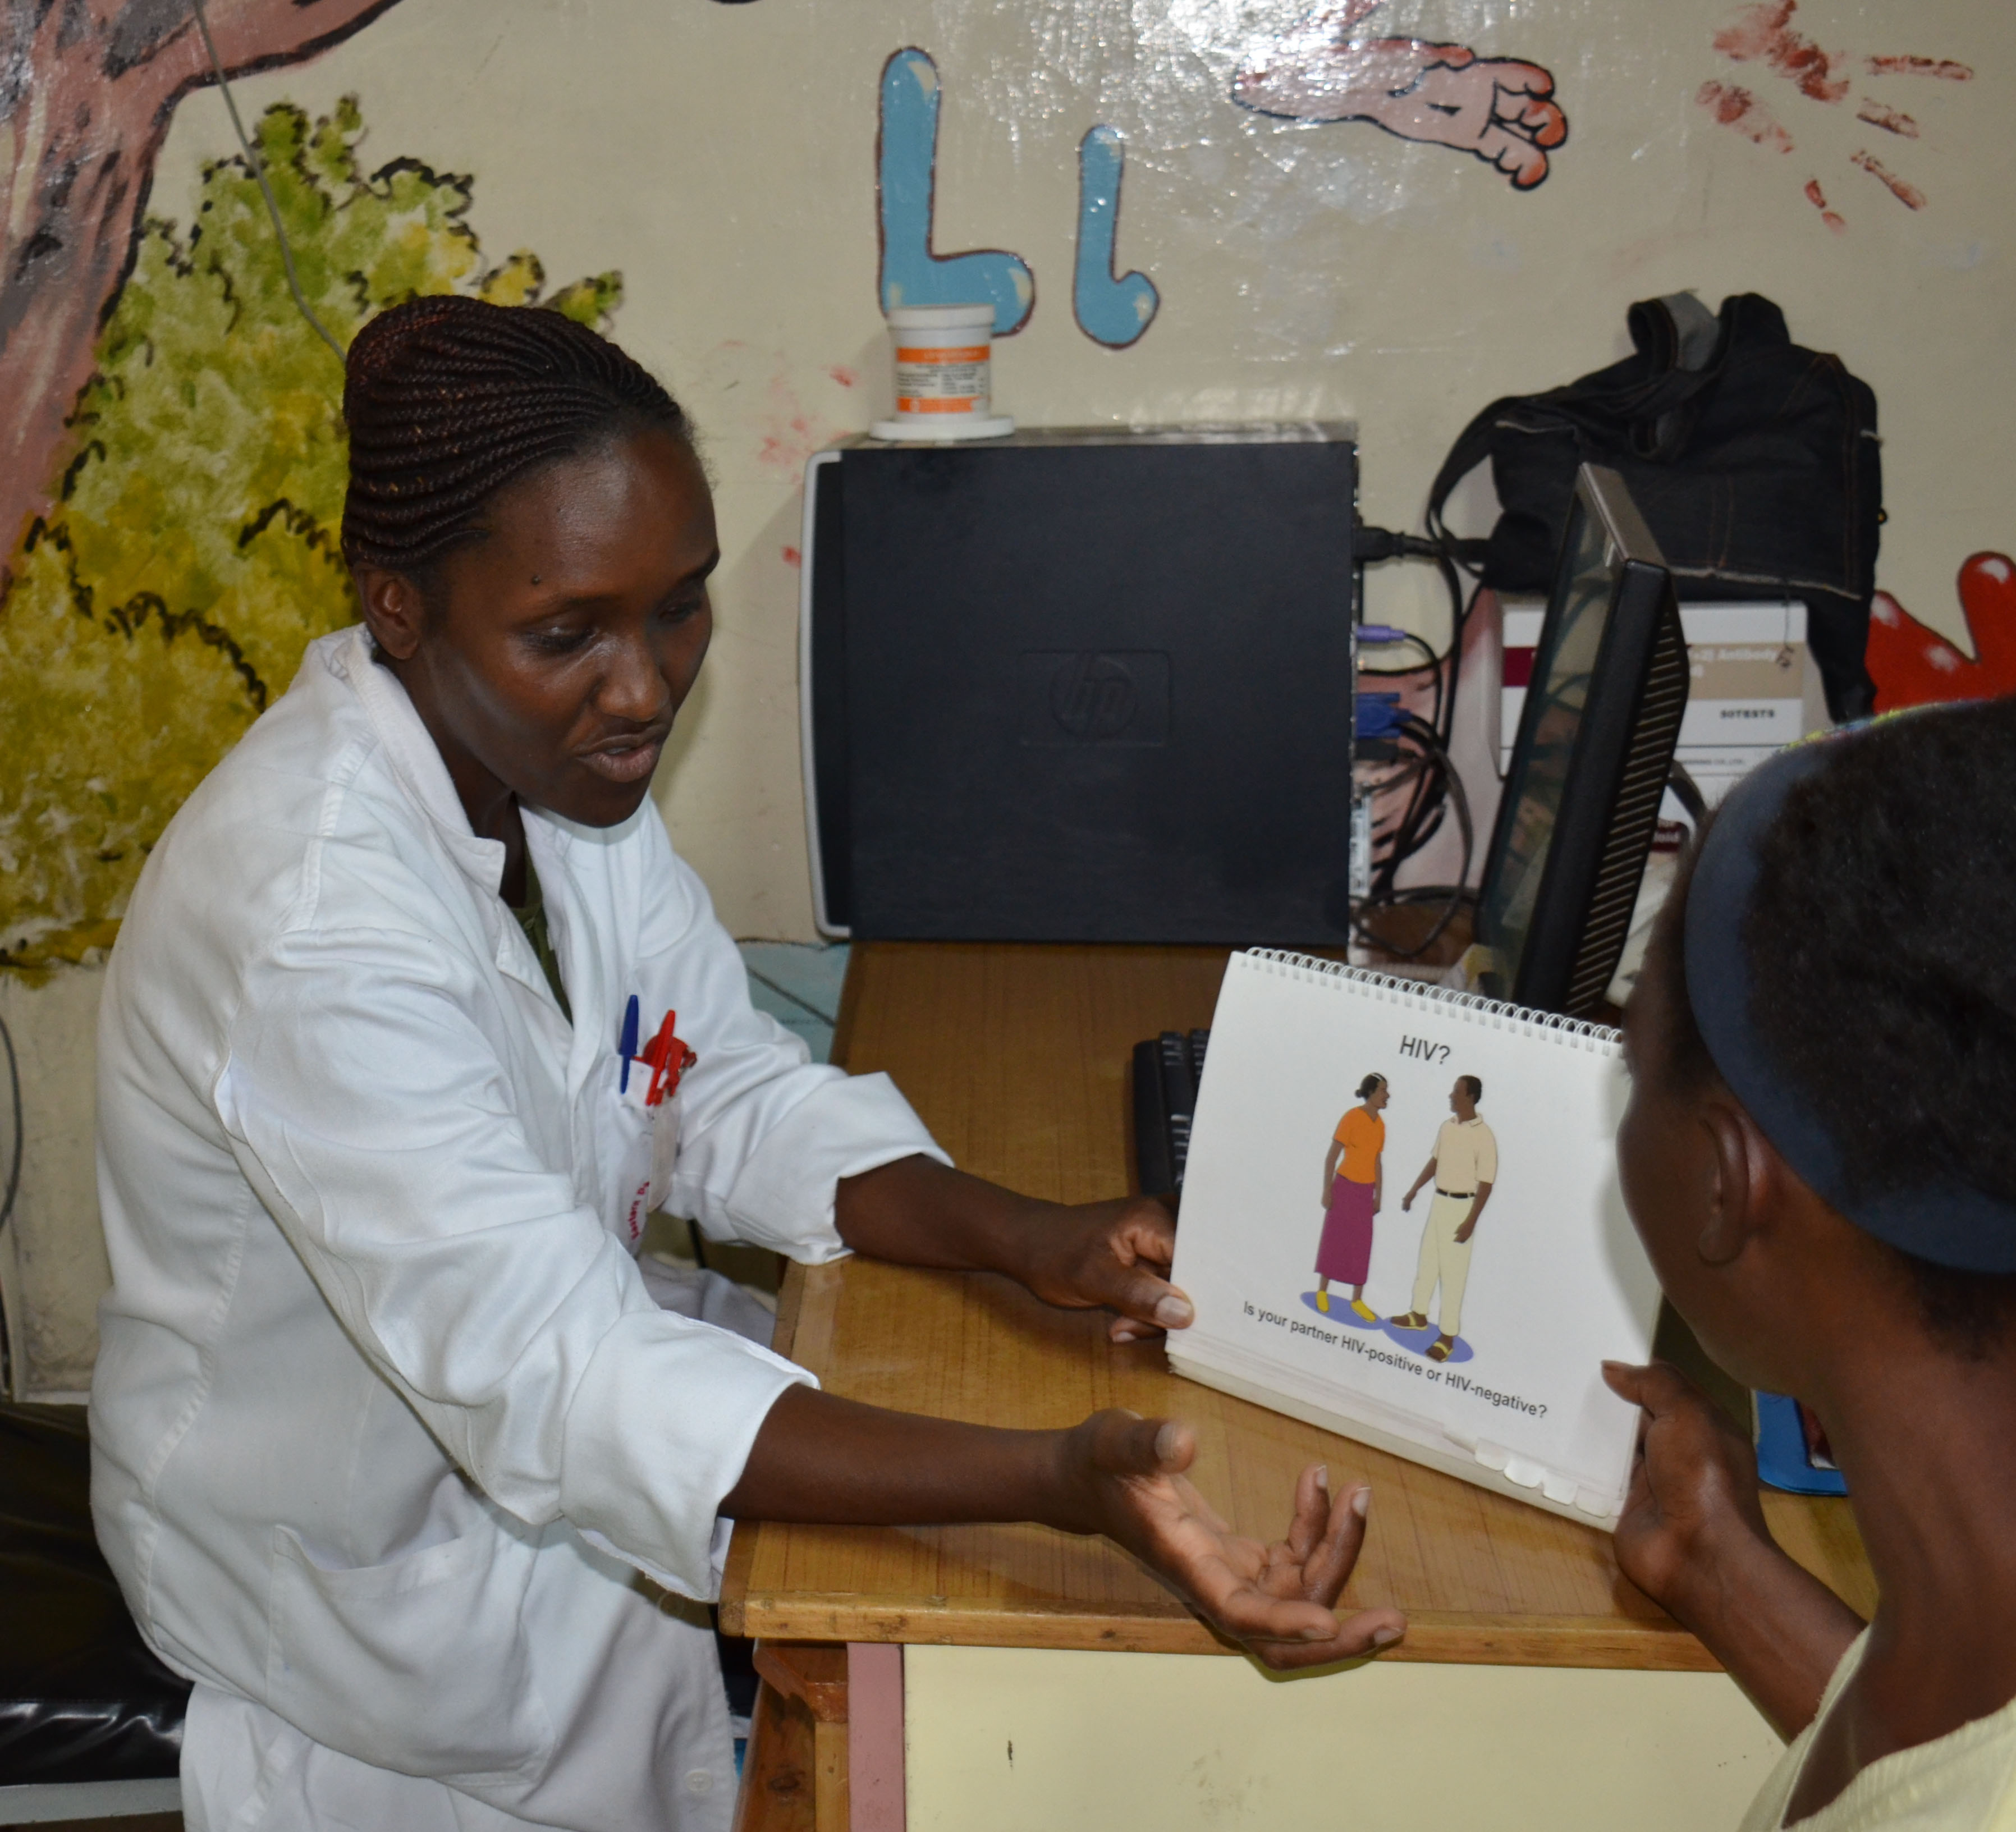 Jelius Muraguri, PMTCT nurse at EDARP, discusses HIV prevention and care with one of the mothers attending CDC- supported Komarock Clinic